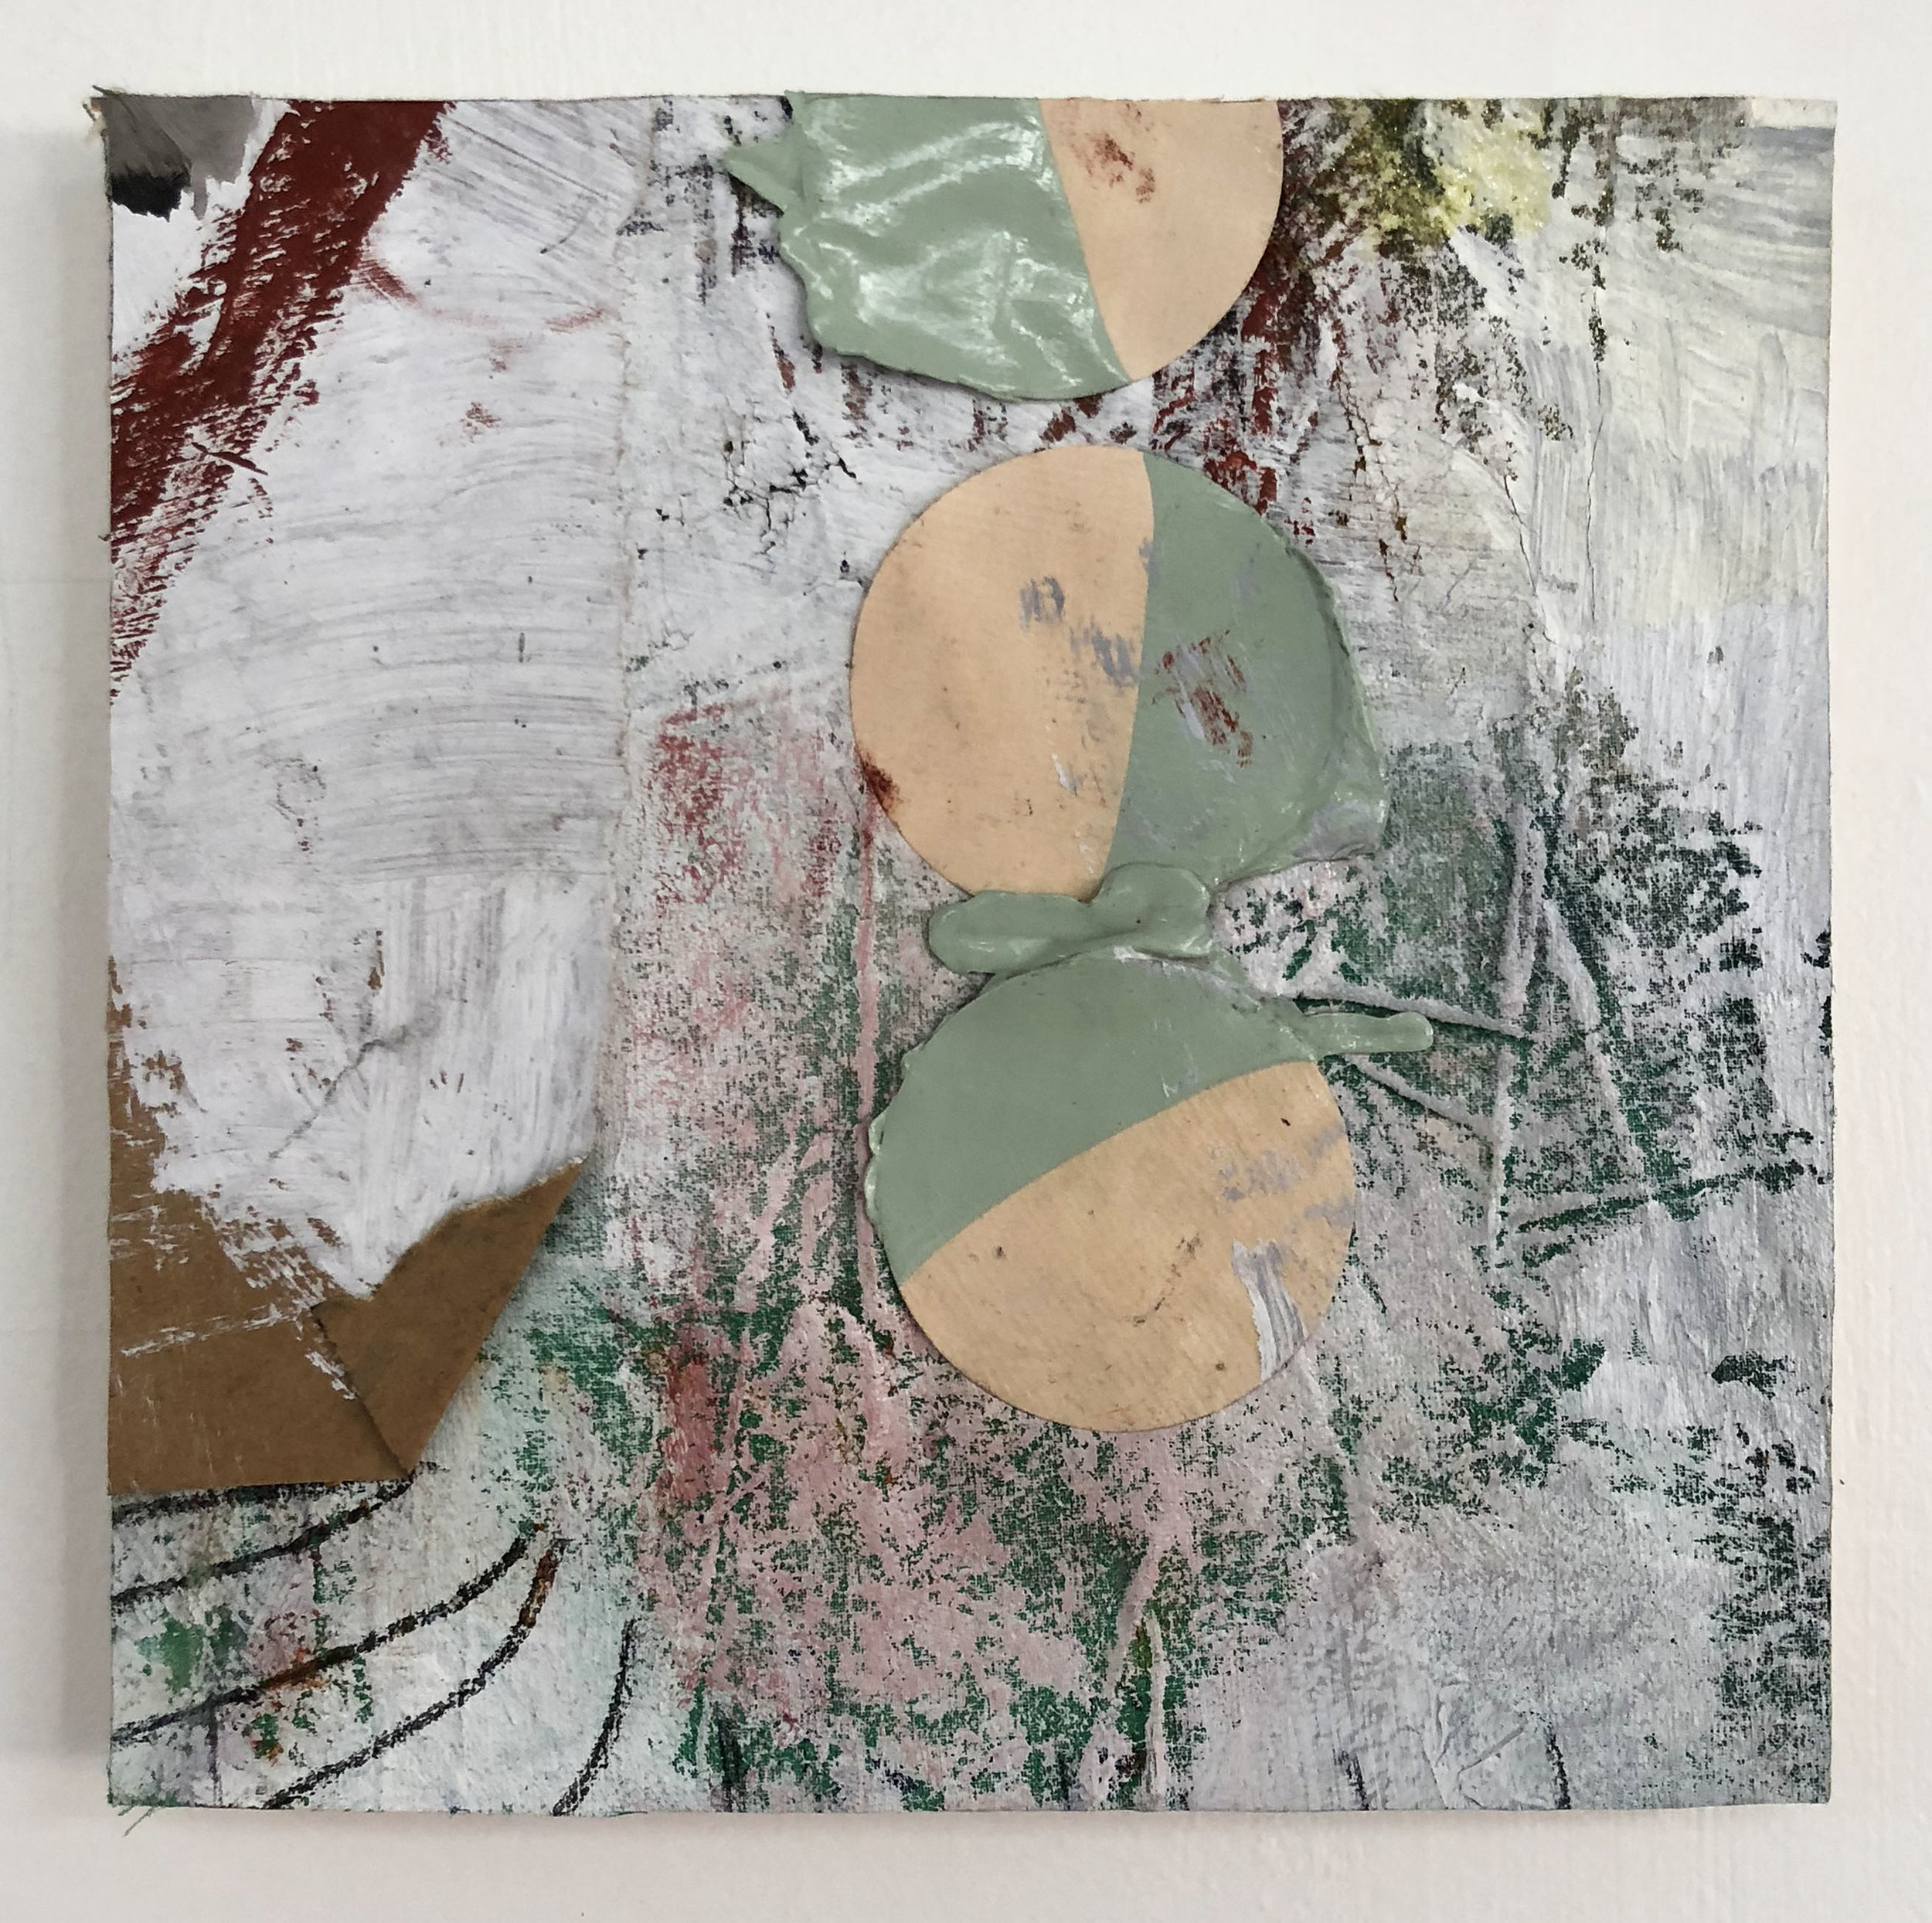 Dipped & Dotted,  2016-18, Collage, charcoal, acrylic, oil, ink, enamel, conté on panel